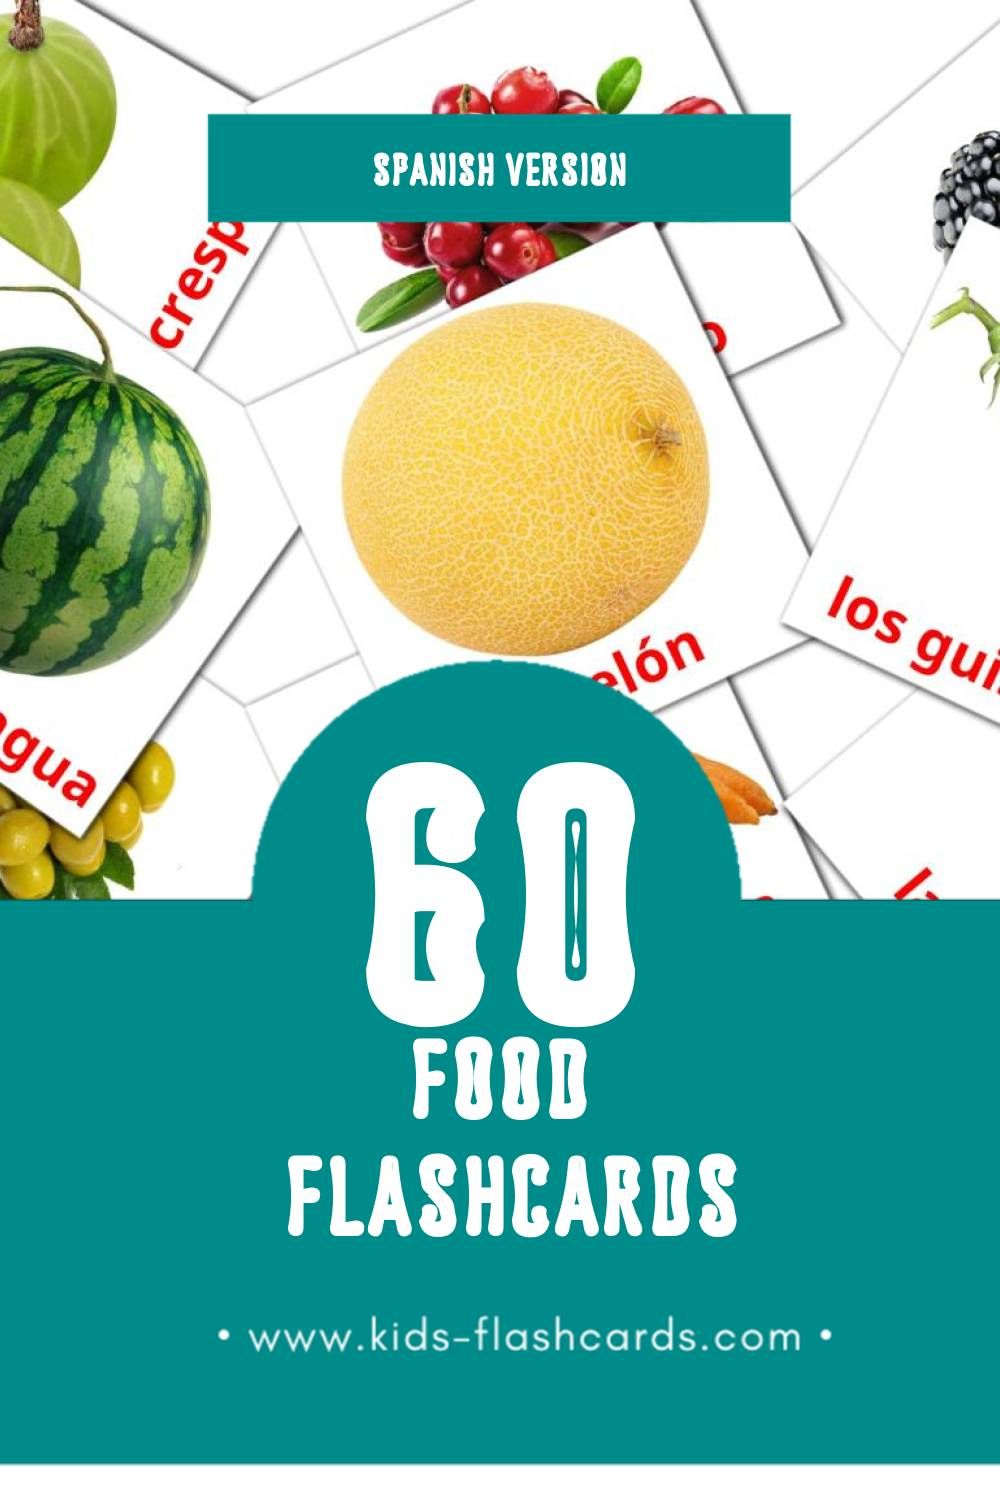 Visual La comida Flashcards for Toddlers (60 cards in Spanish)